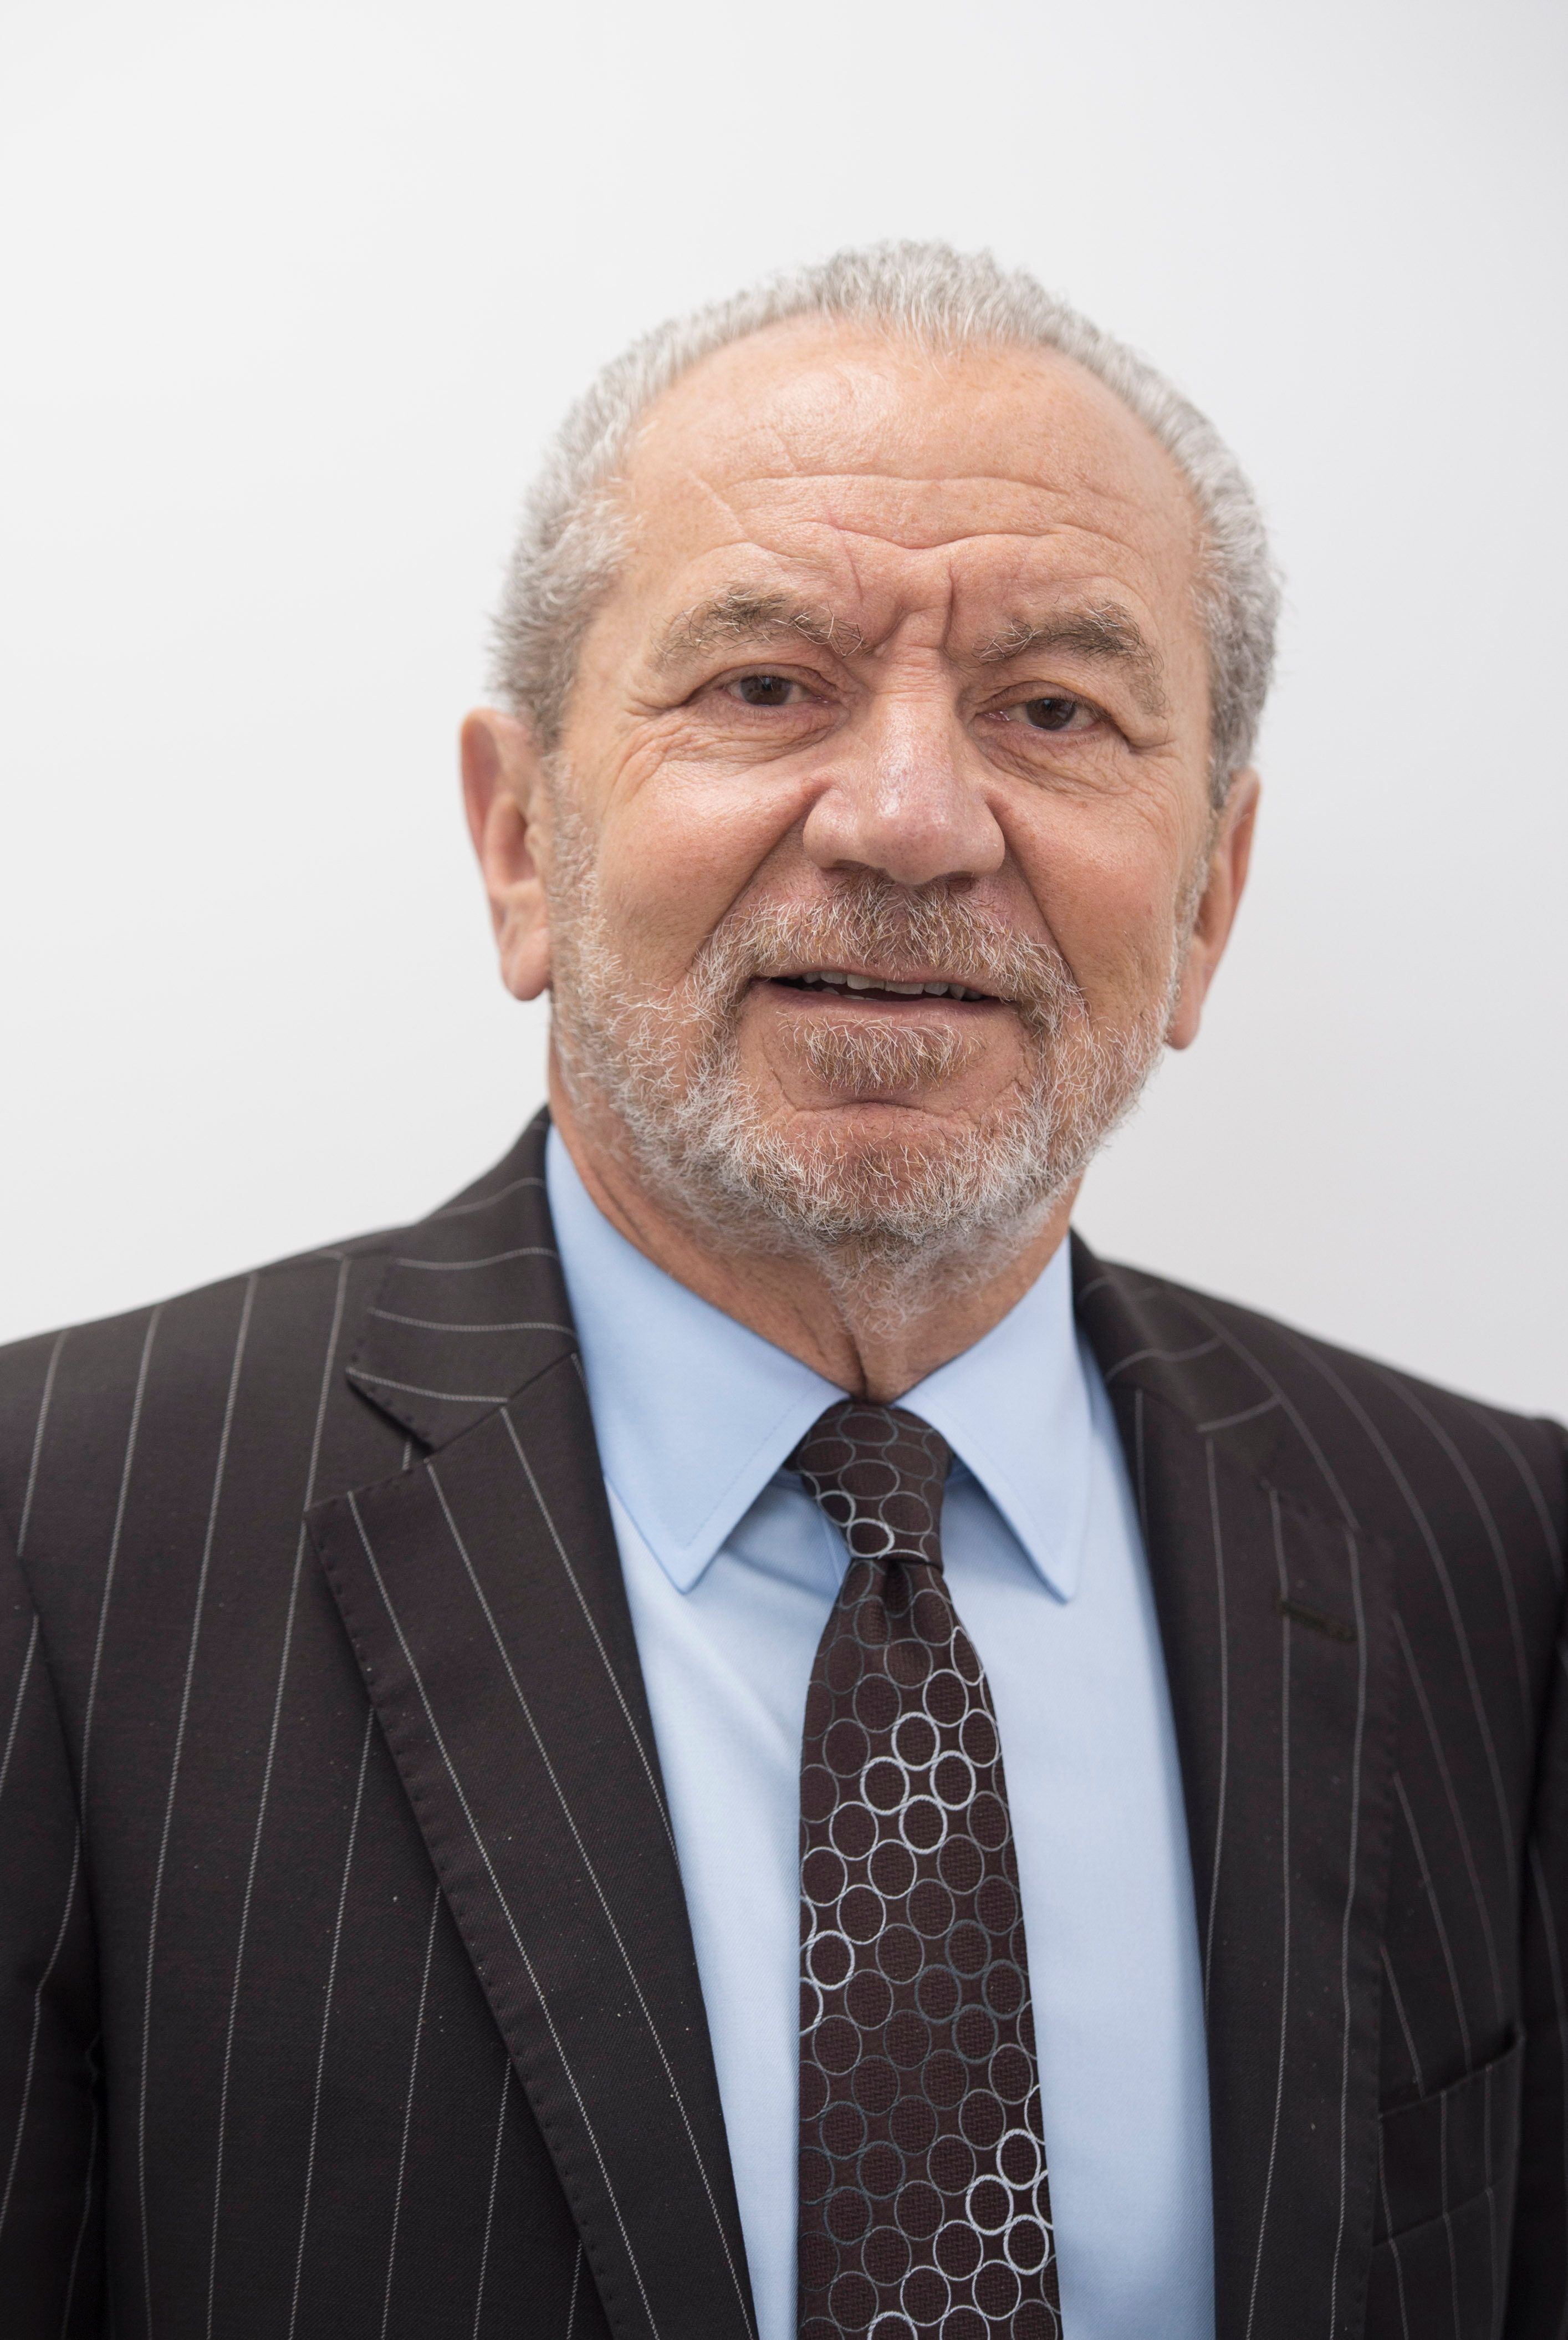 Lord Sugar Forced To Apologise For Tweeting 'Racist' Joke About Senegal Football Team